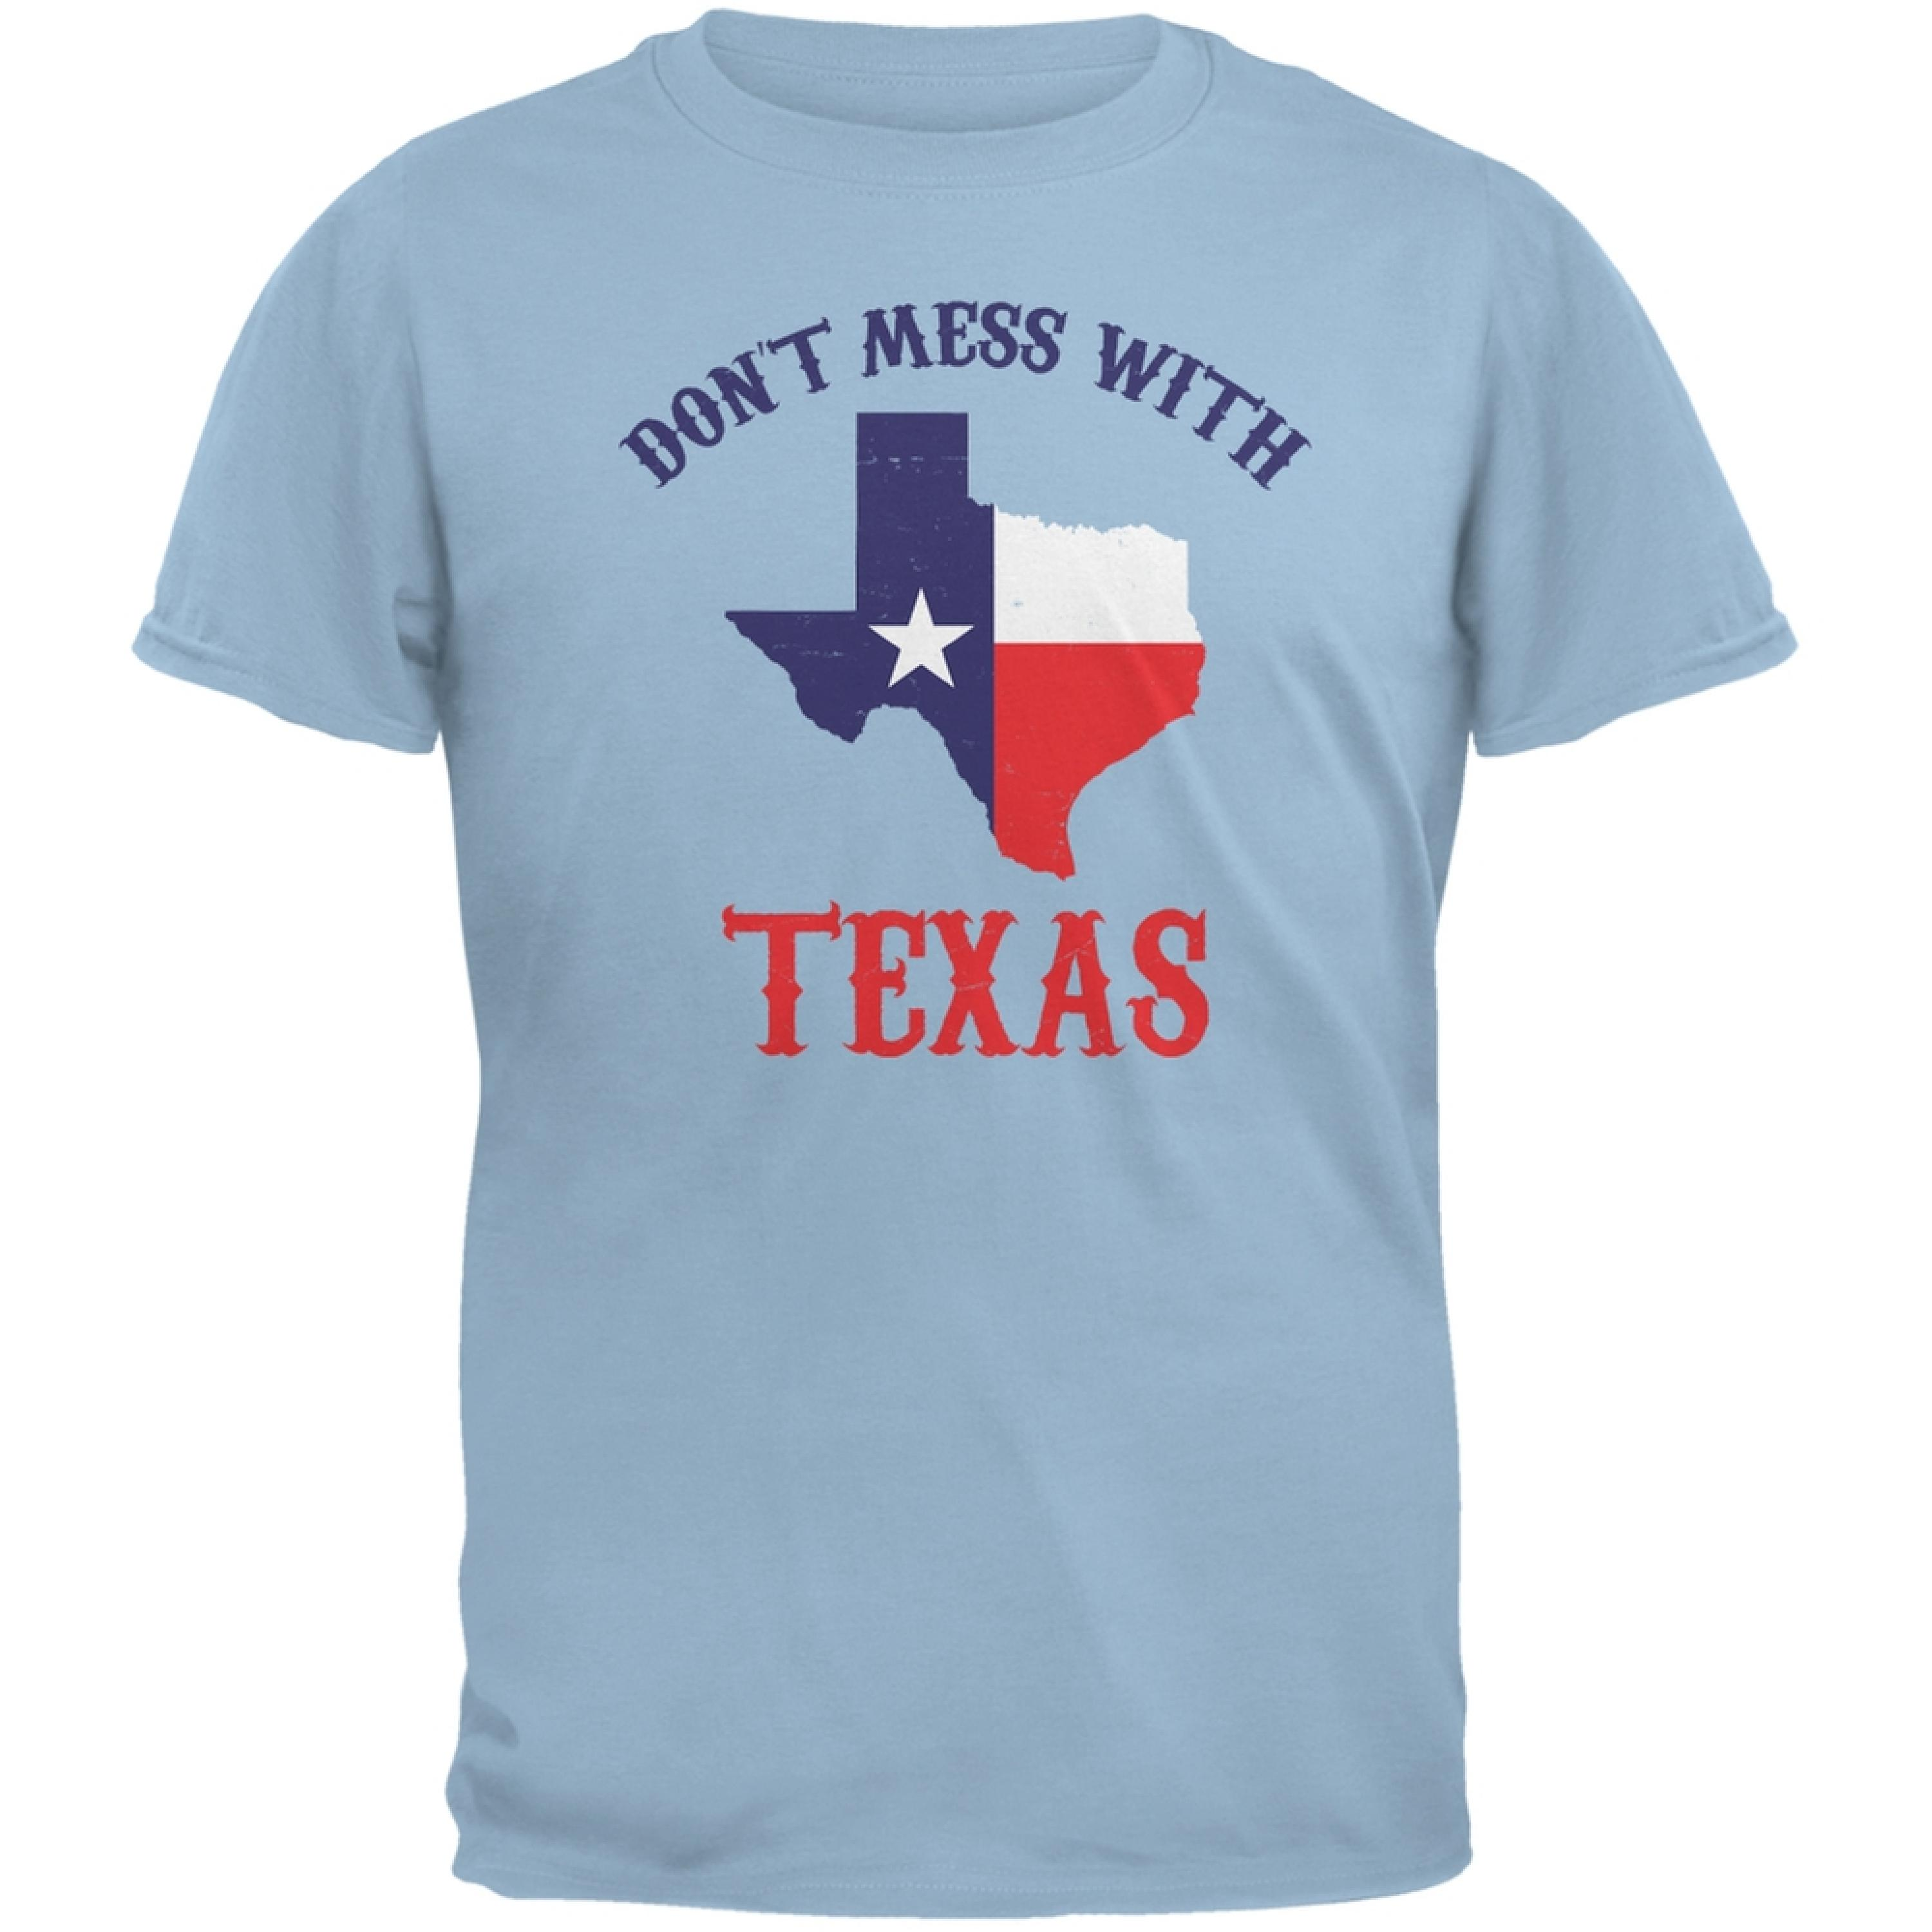 Don't Mess With Texas Light Blue Adult T-Shirt